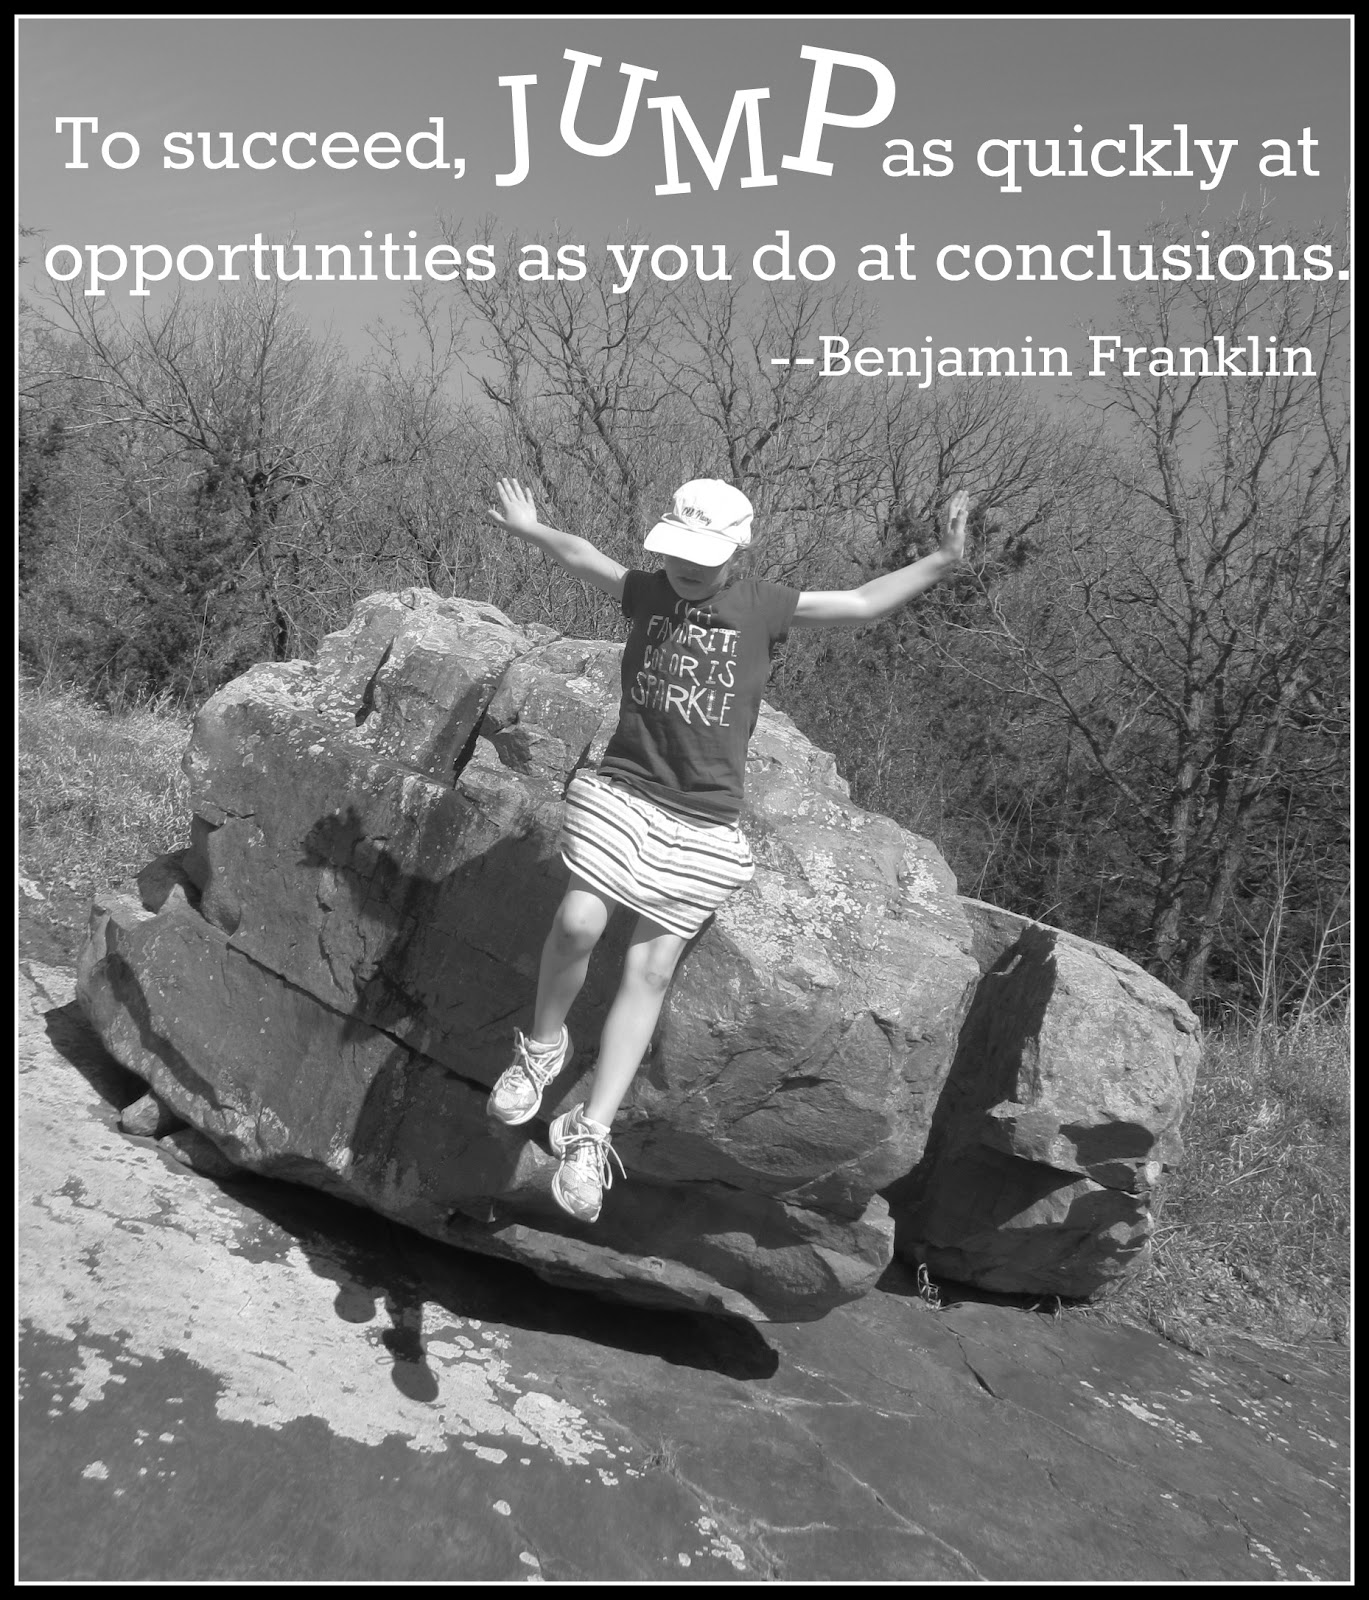 Jumping To Conclusions Quotes Famous Quotes About 'jump'  Sualci Quotes